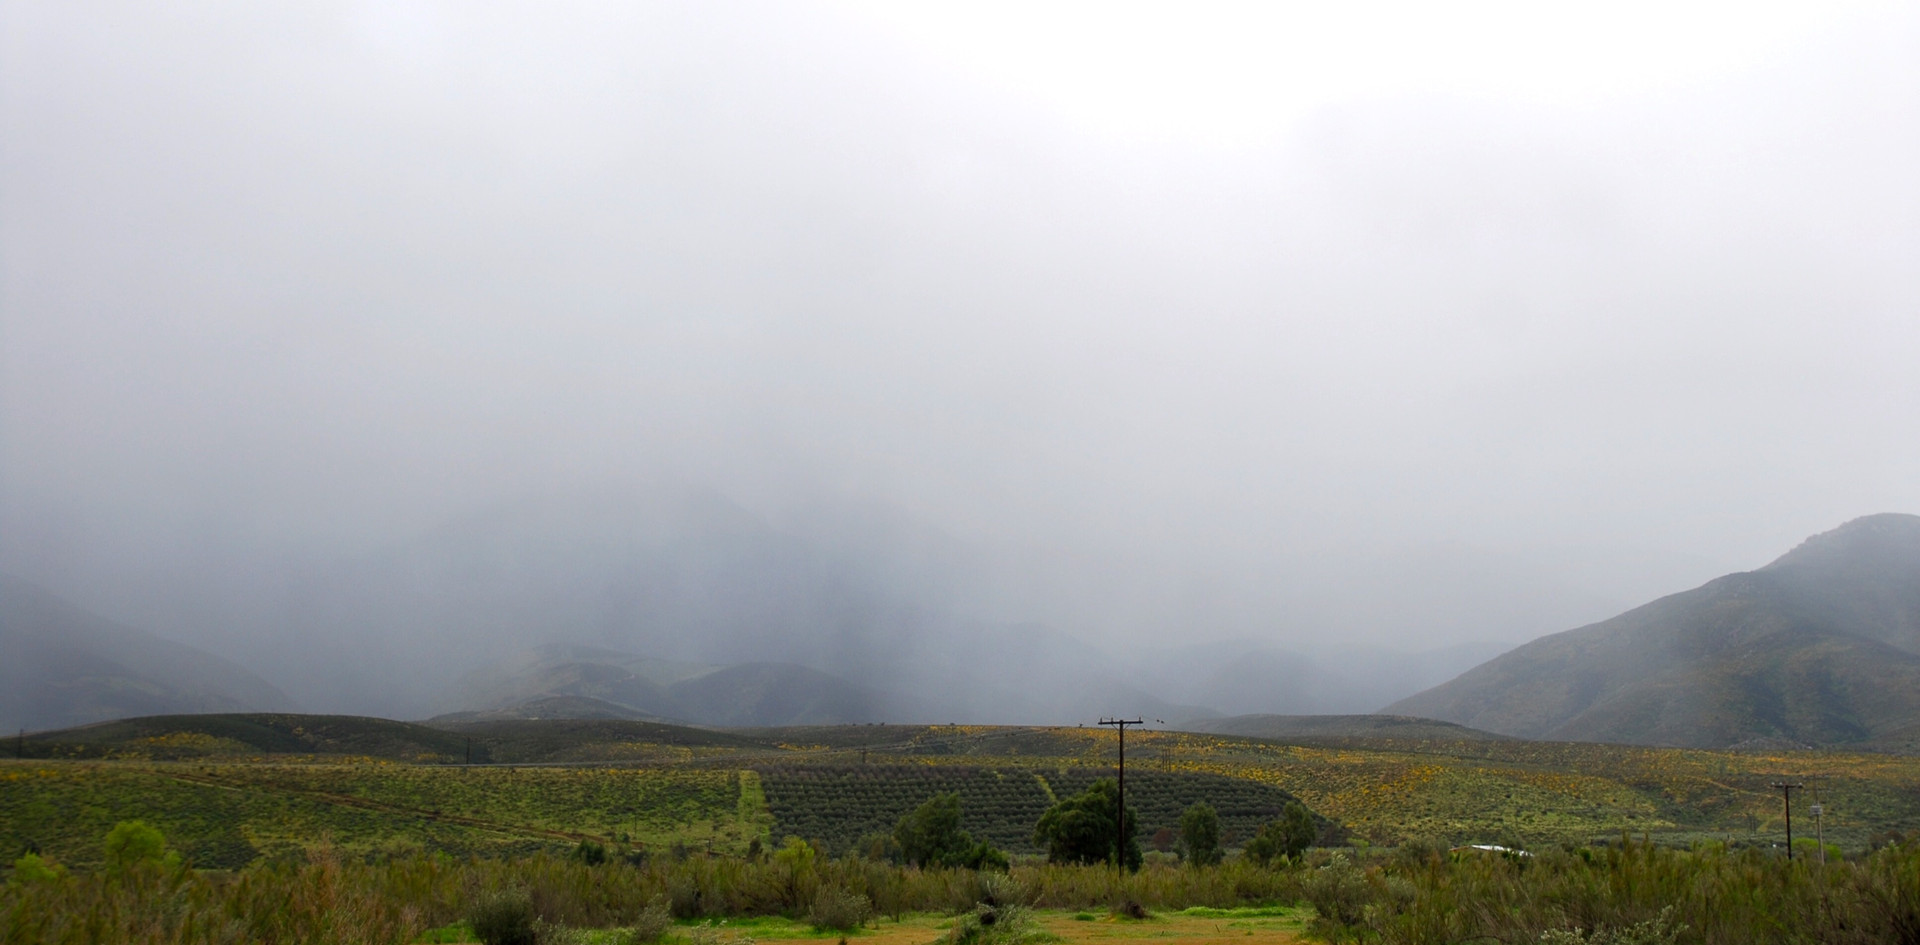 Morning fog comes in from the ocean and lays over the valley. This fog plays a significant role in tempering the climate, making it an ideal location to plant grape vines.